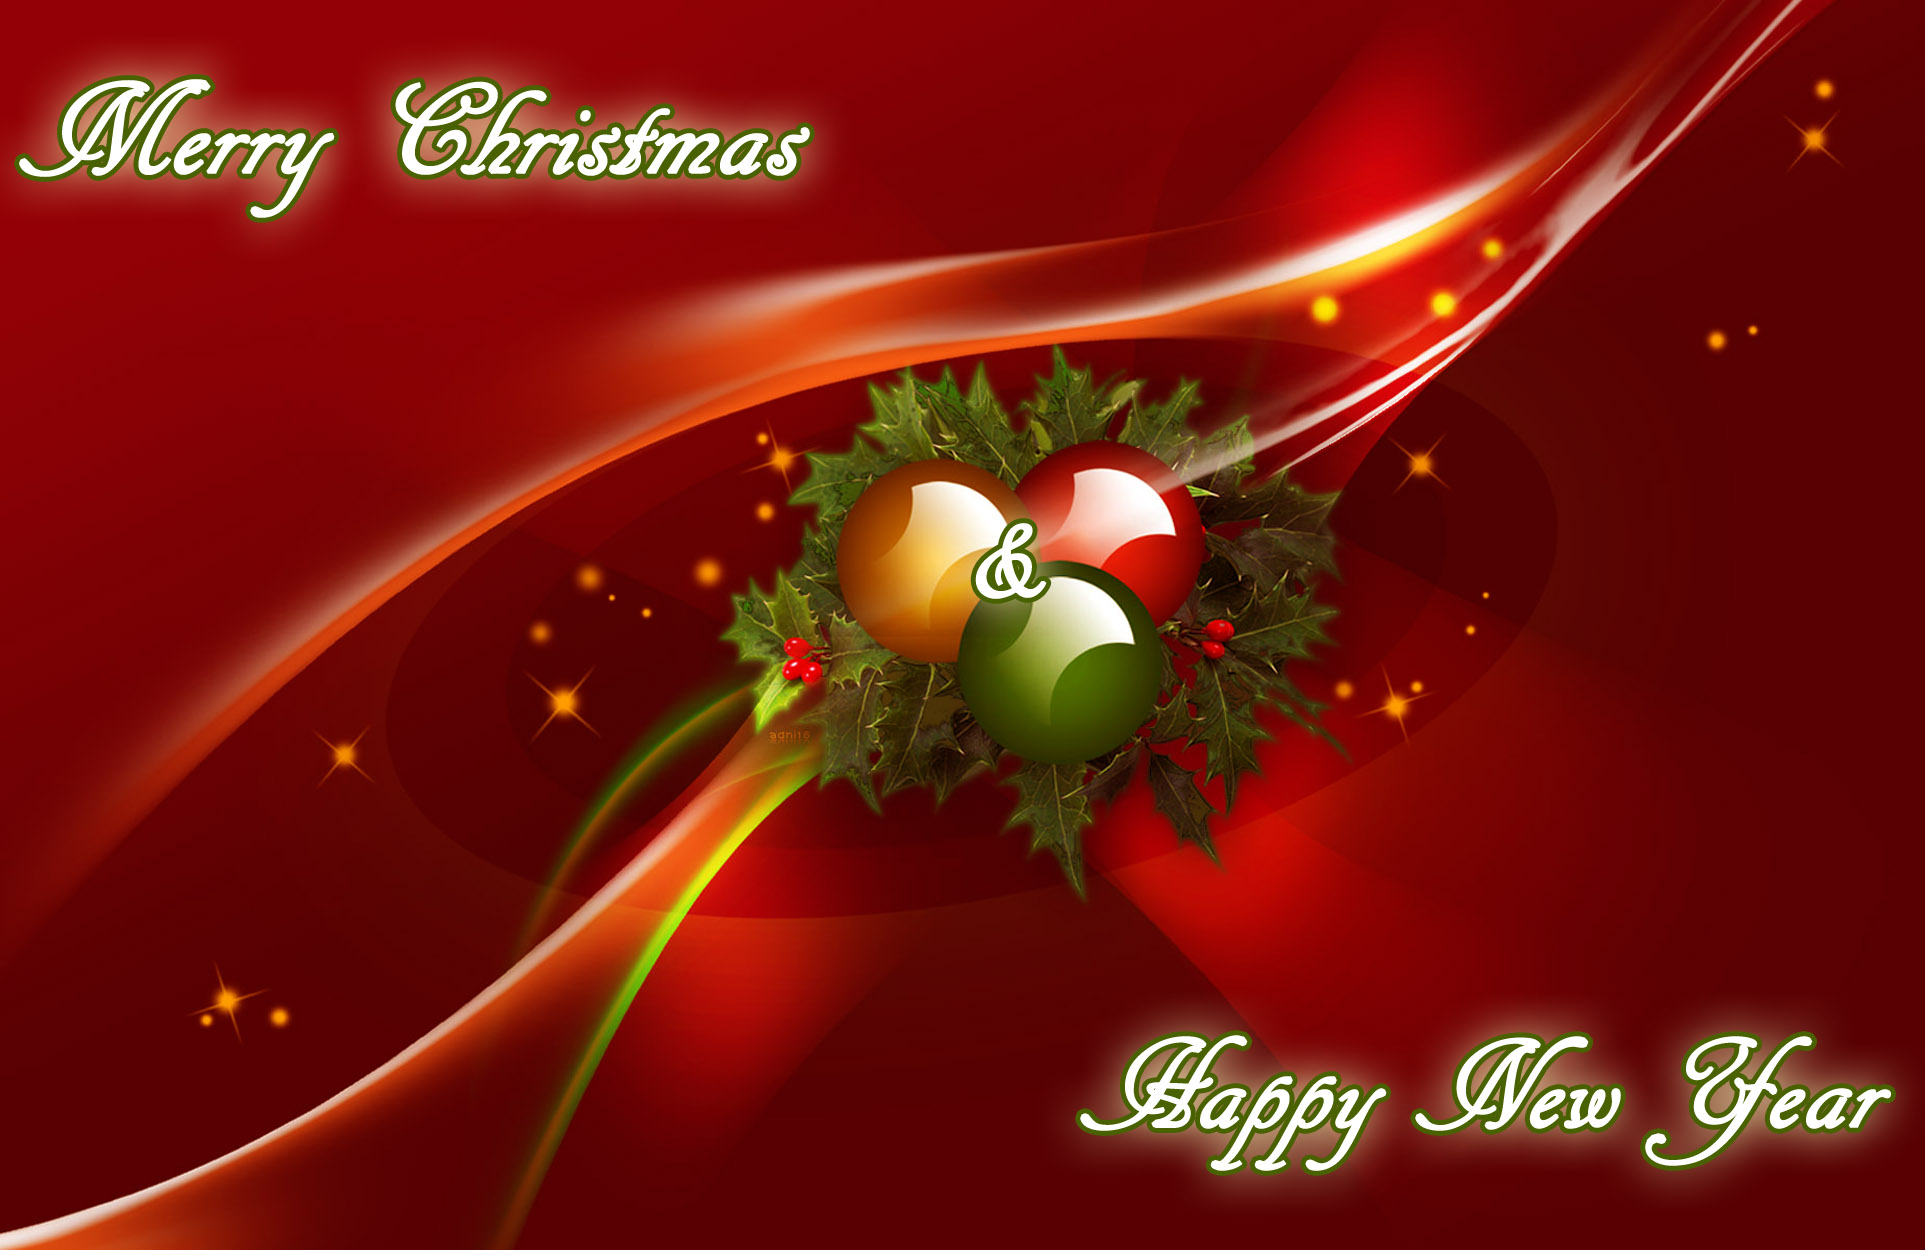 Christmas New Year Greeting Card Messages Merry Christmas And